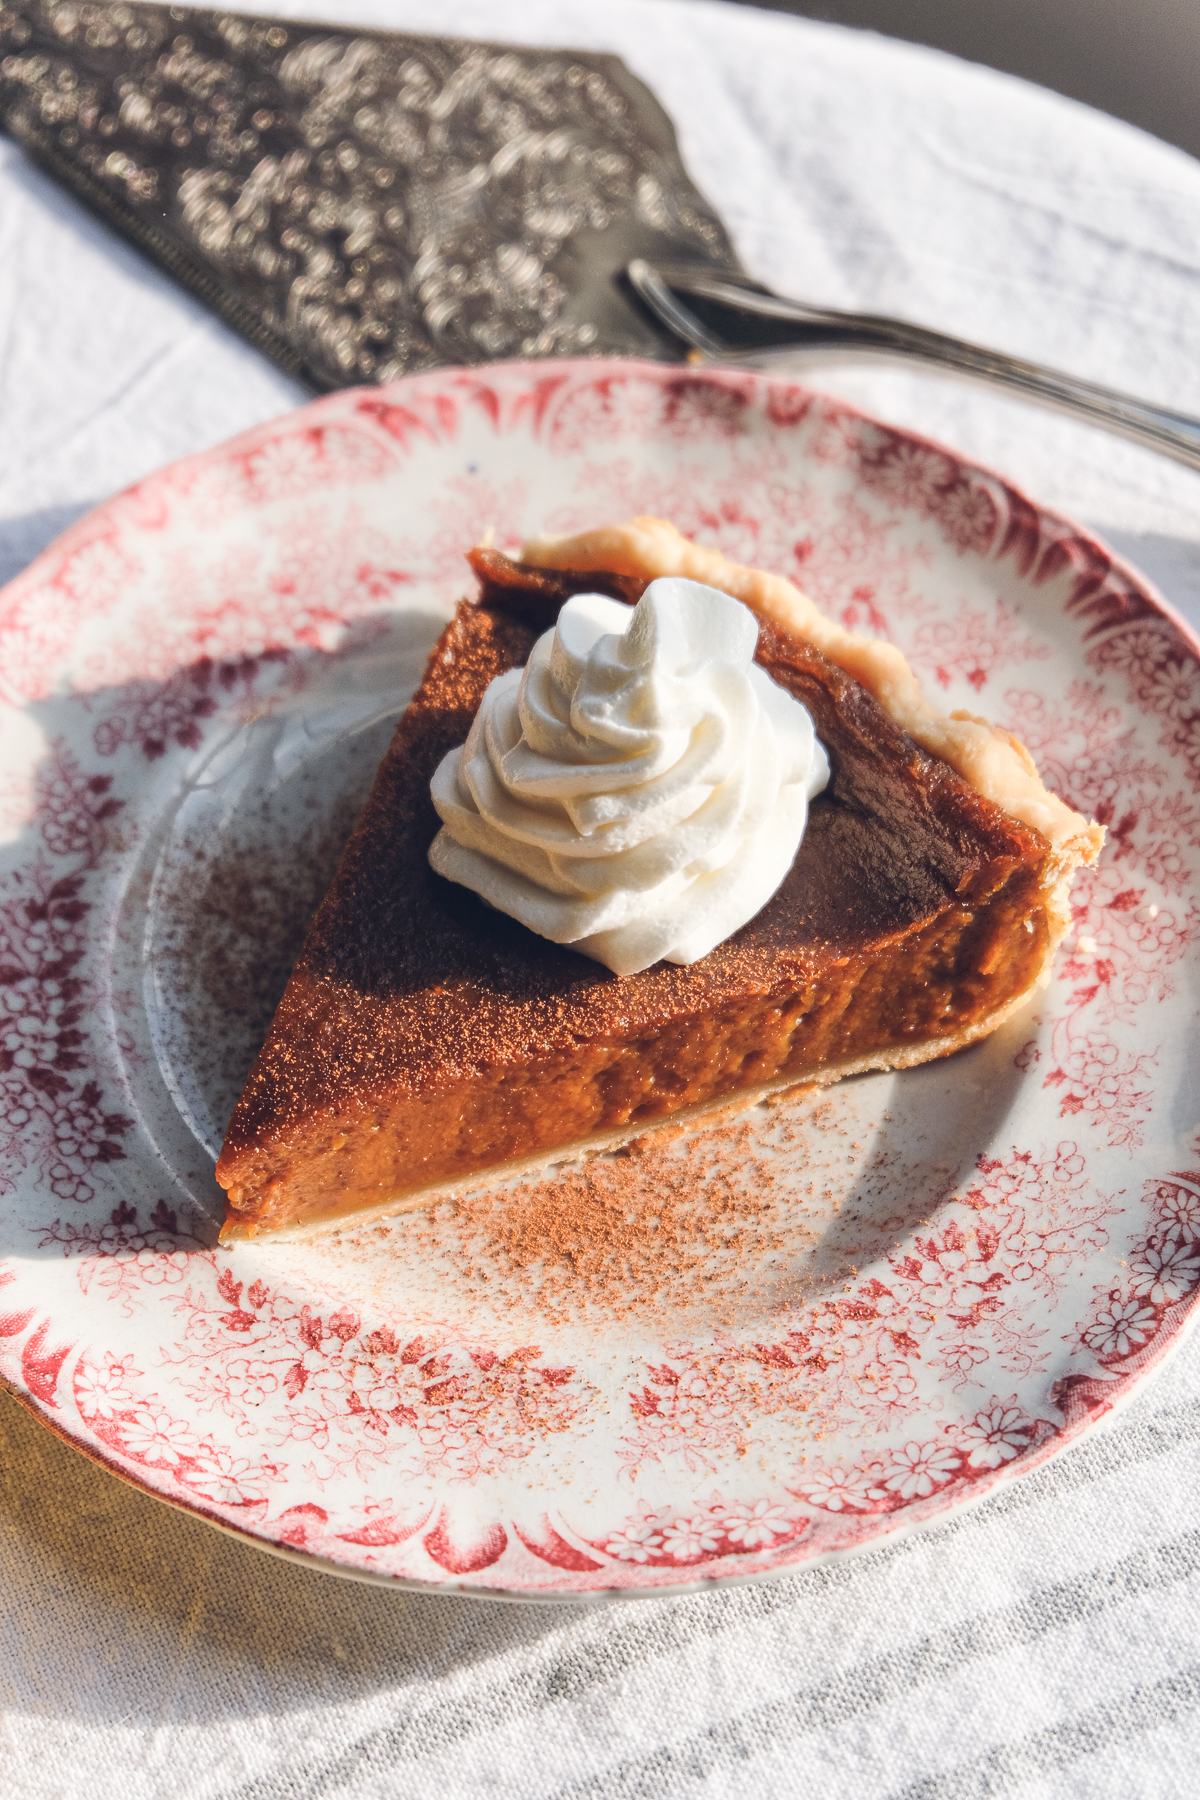 A slice of vegan pumpkin pie on a plate, topped with a spiral of whipped cream.